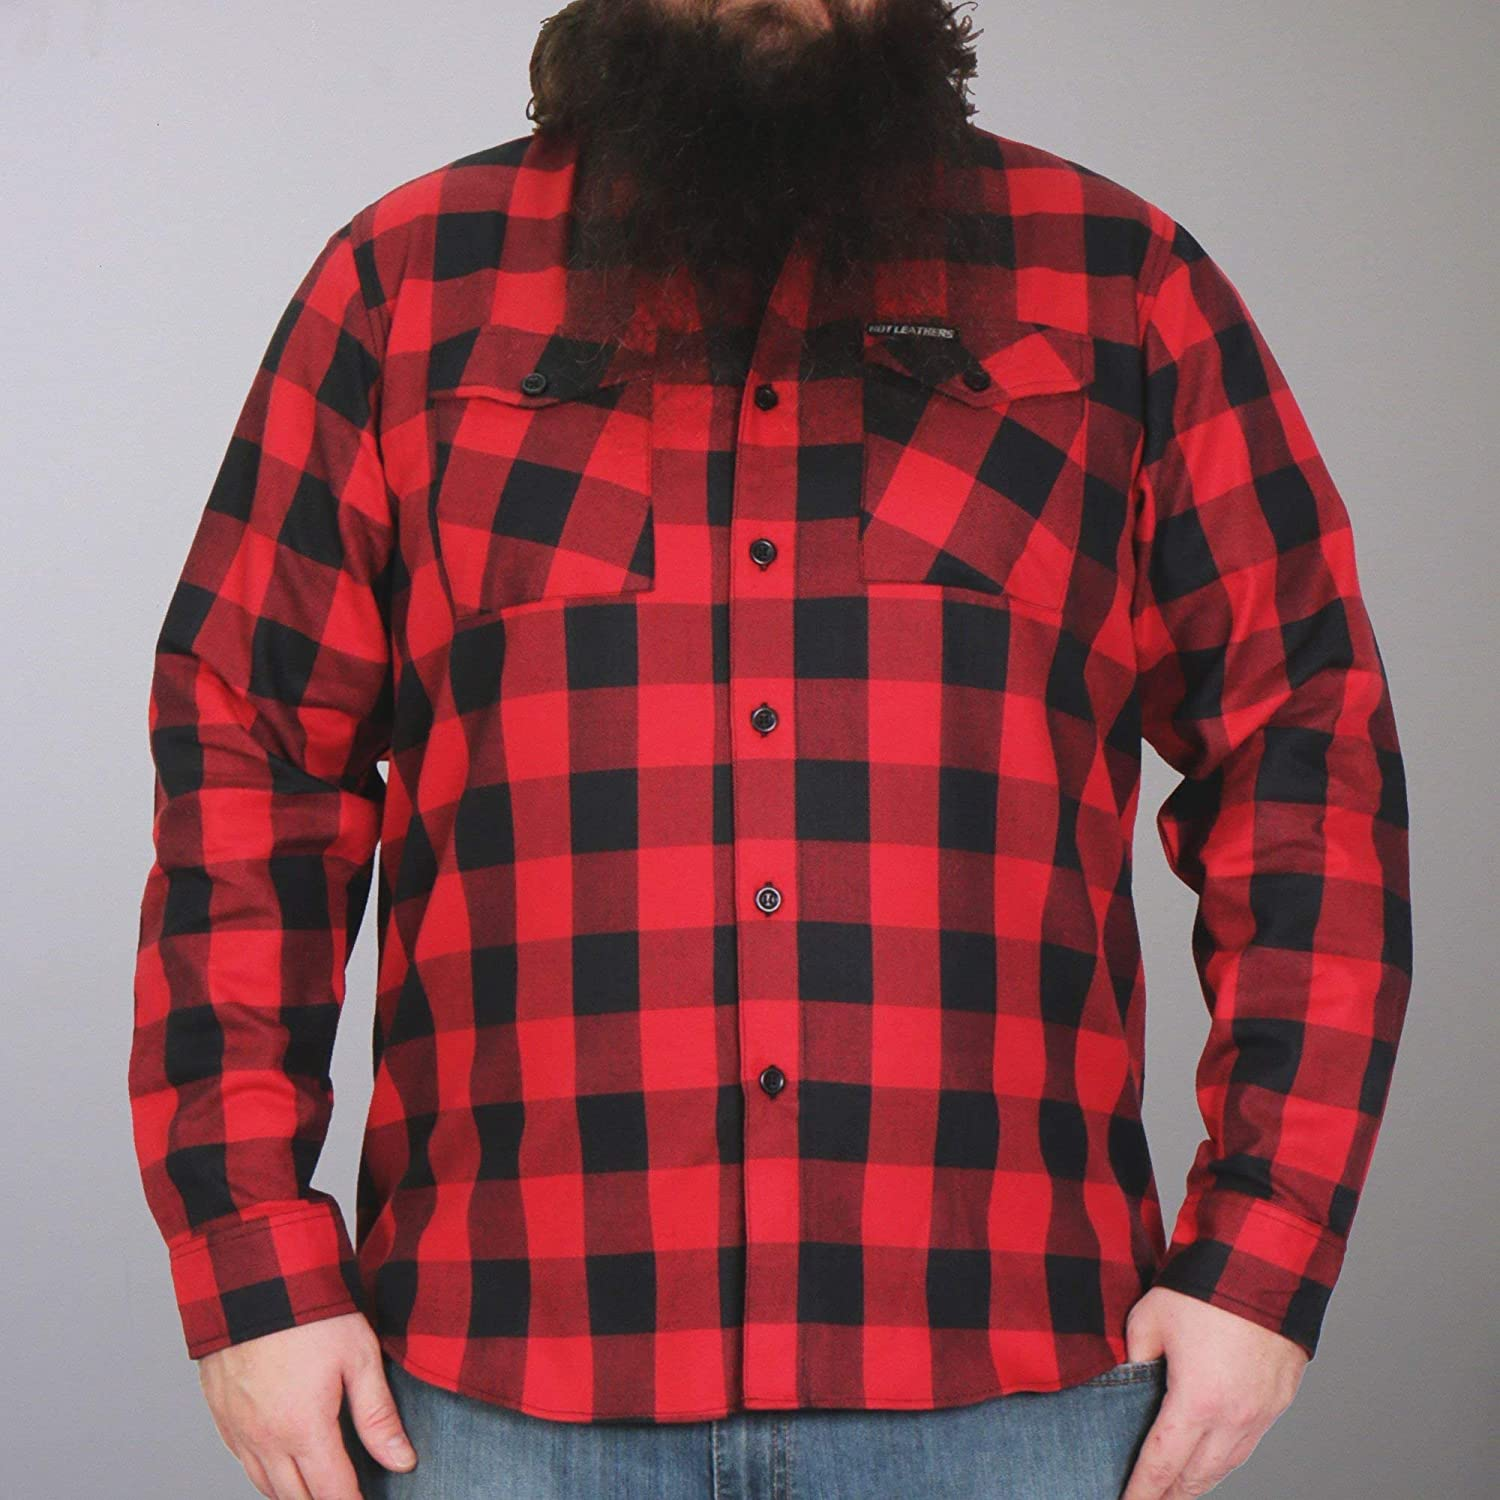 Hot Leathers FLM2002 Mens Black and Red Long Sleeve Flannel Shirt